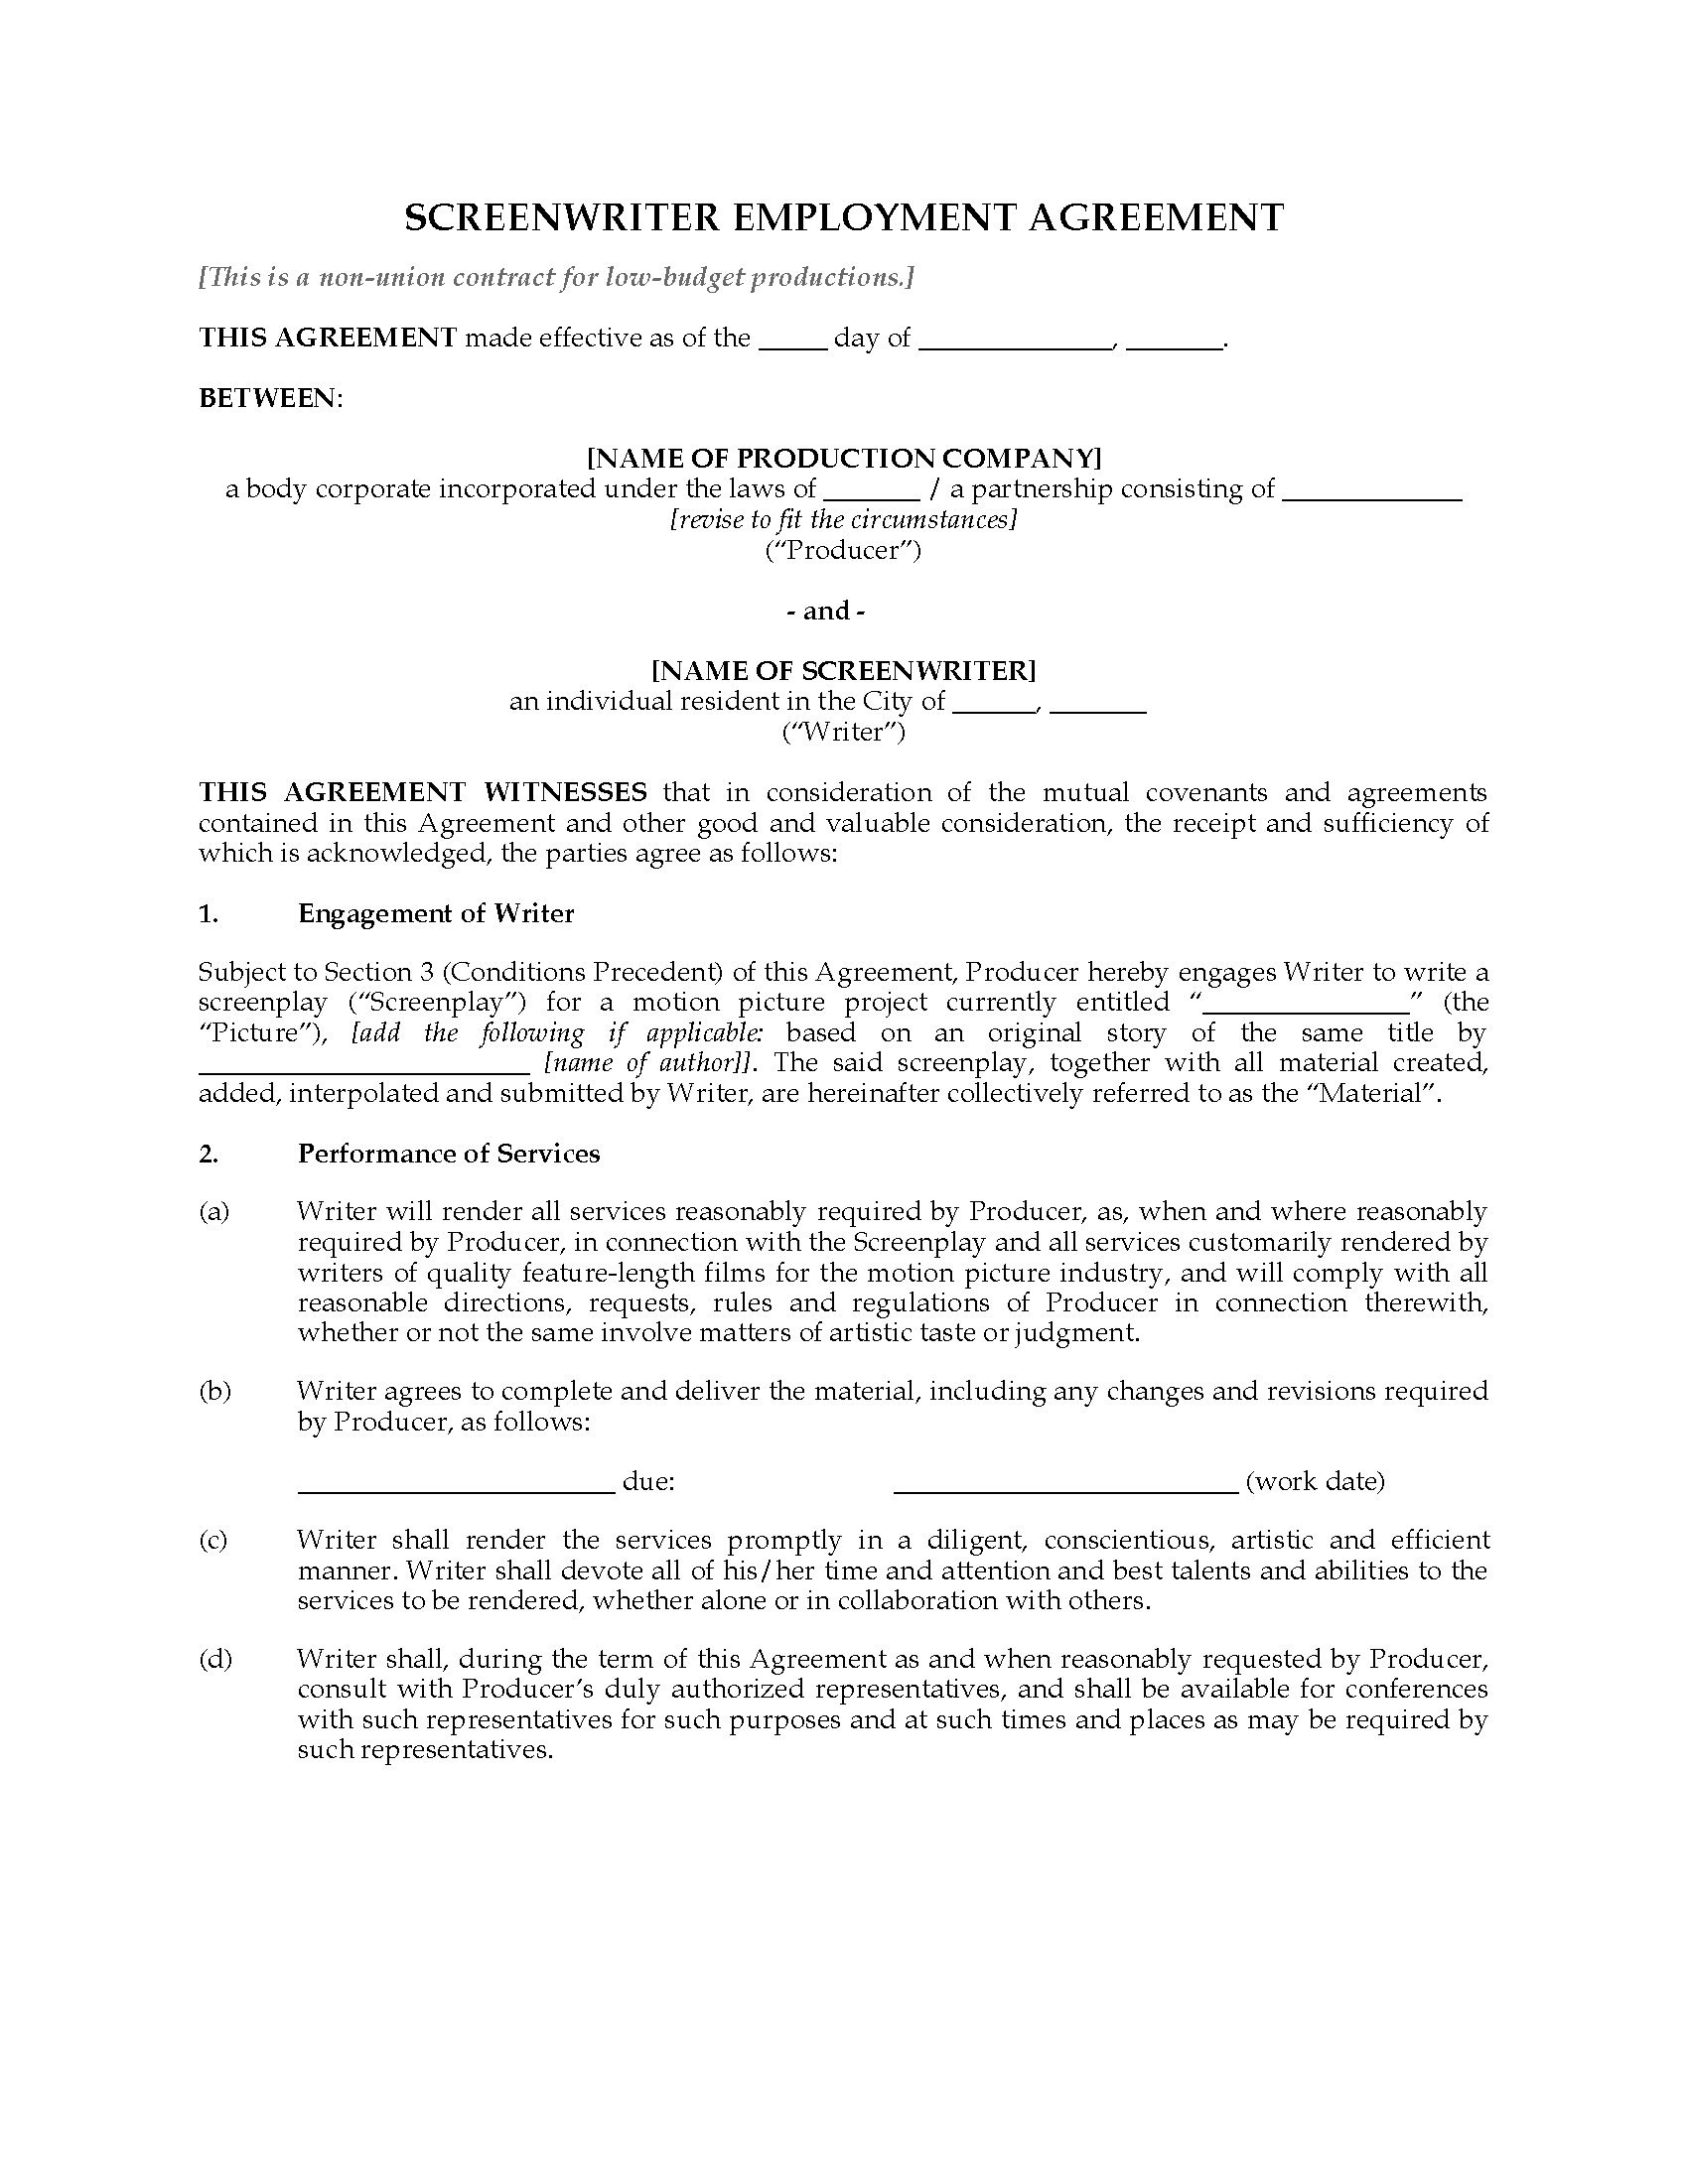 Usa Screenwriter Employment Agreement Nonunion  Legal Forms And With Regard To Screenplay Option Agreement Template